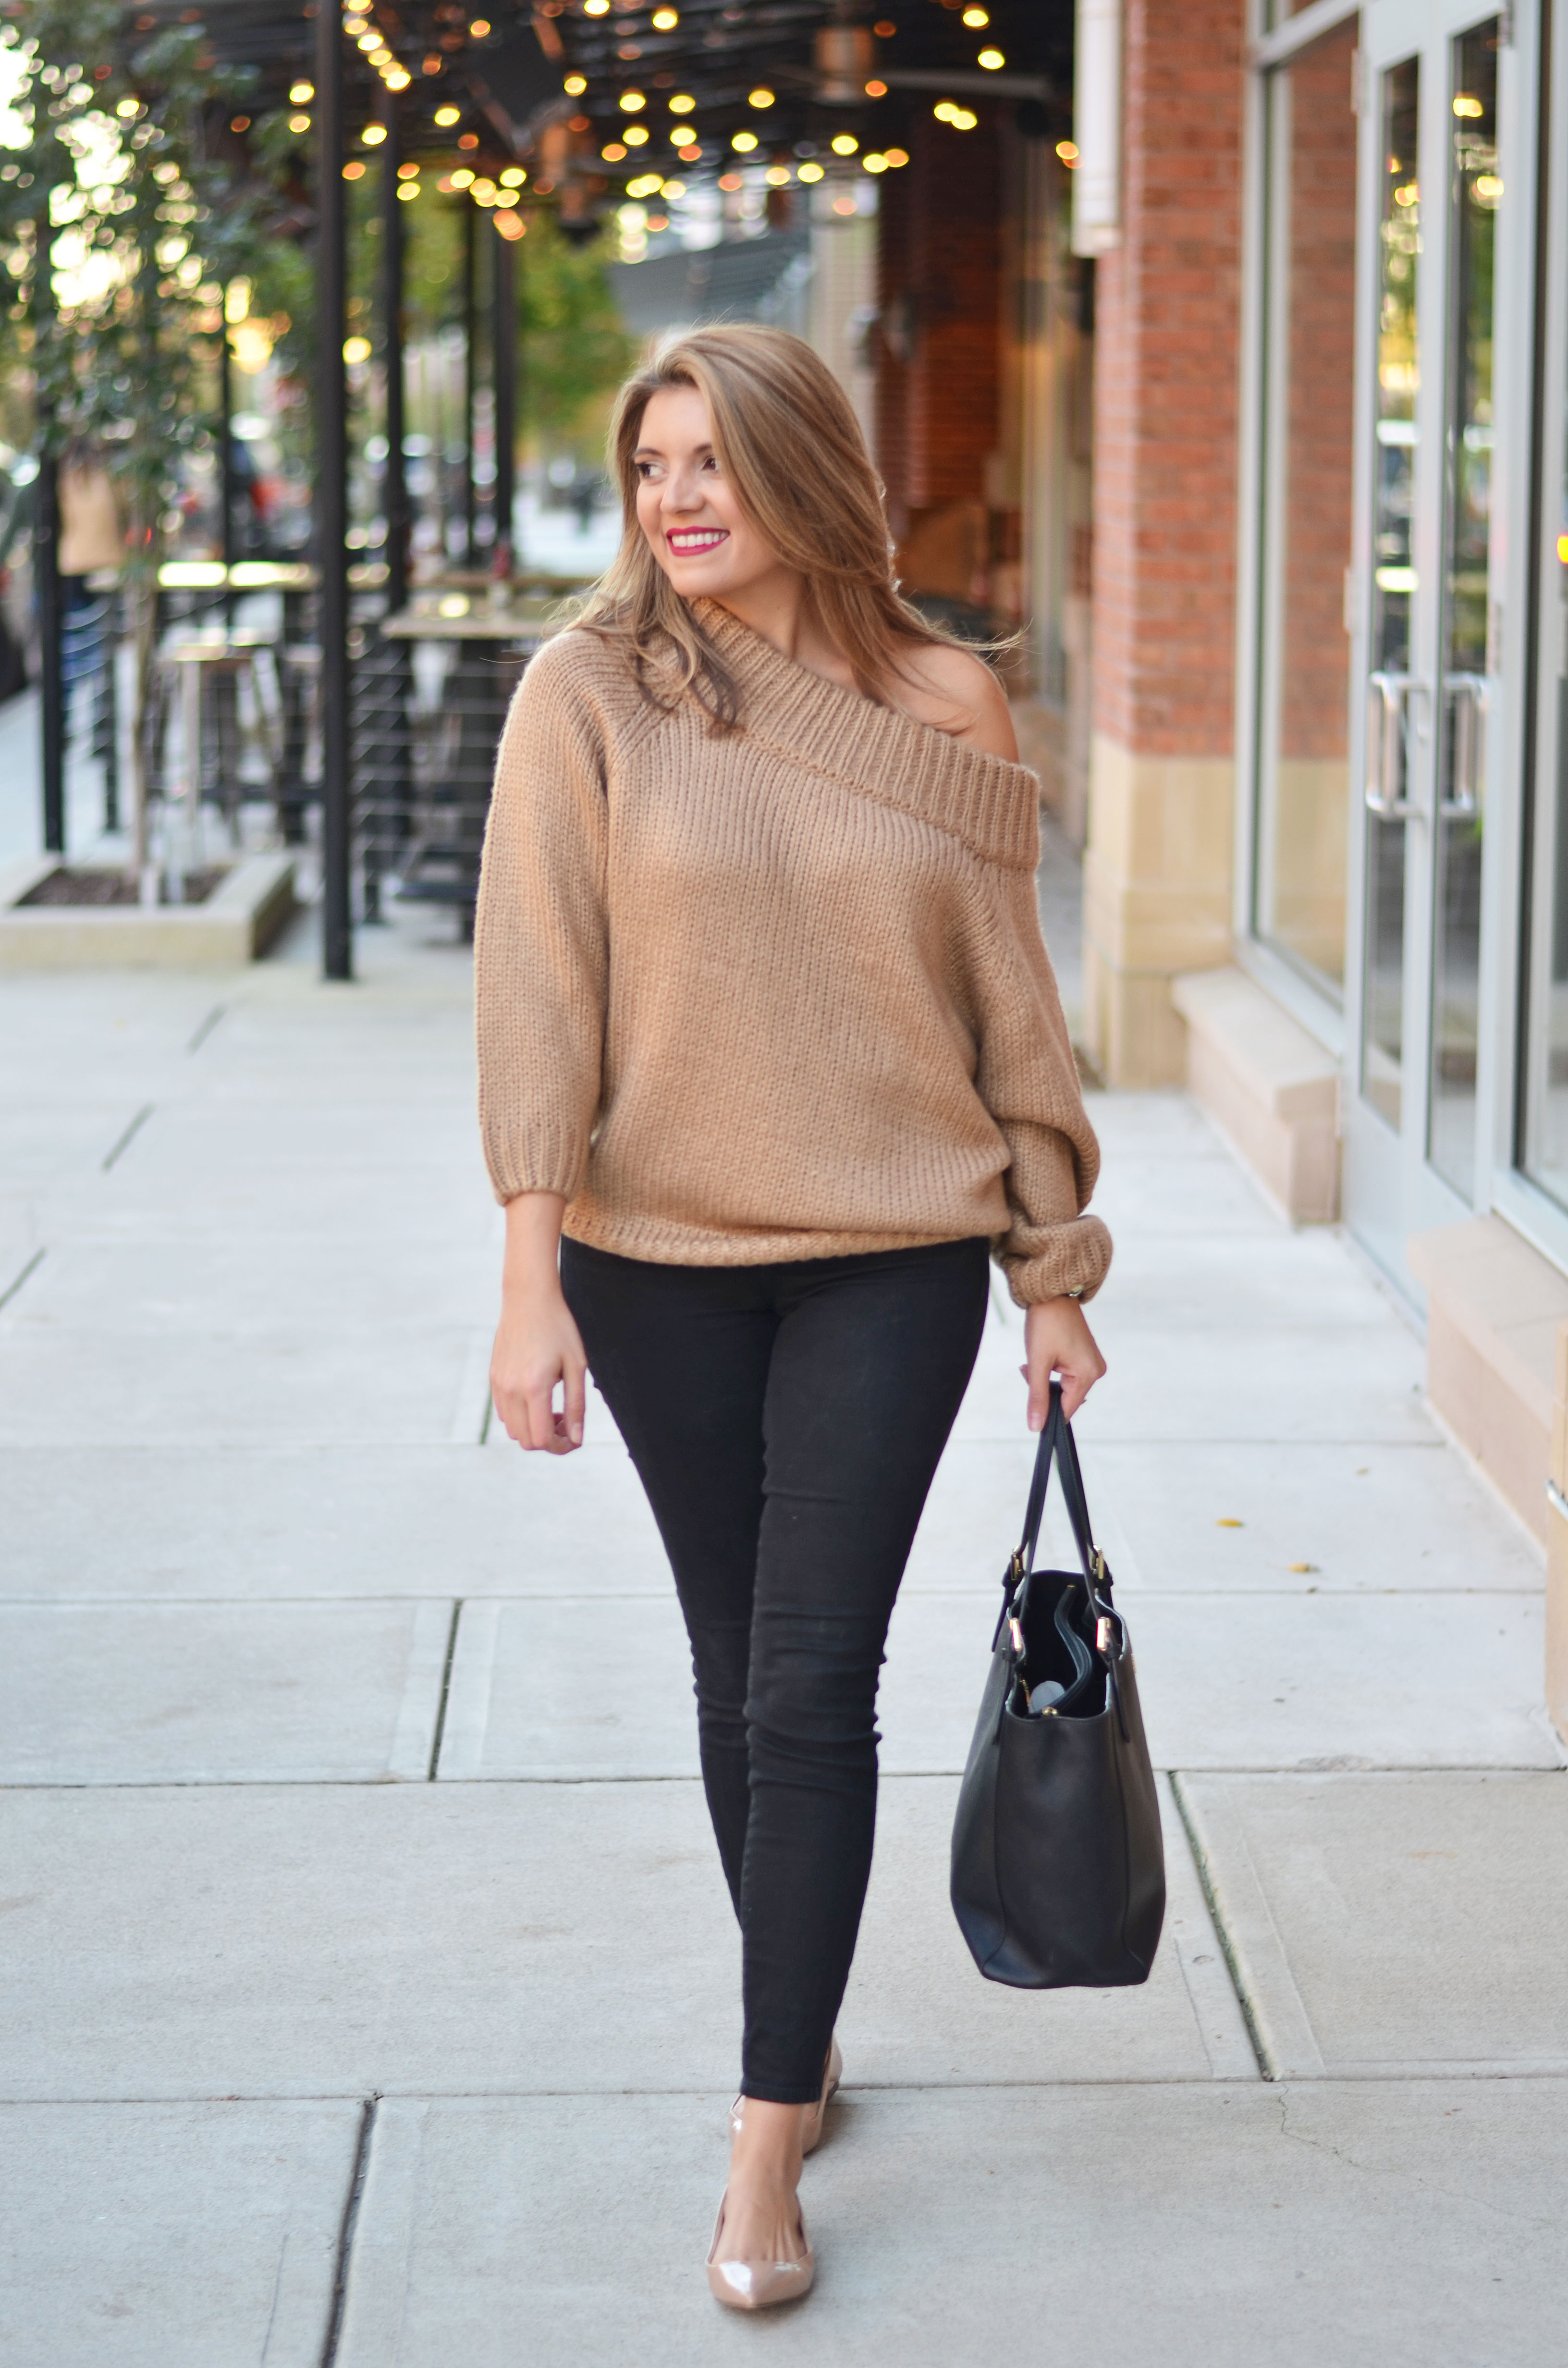 camel off shoulder sweater outfit - chunky camel sweater with black jeans and nude flats | www.bylaurenm.com